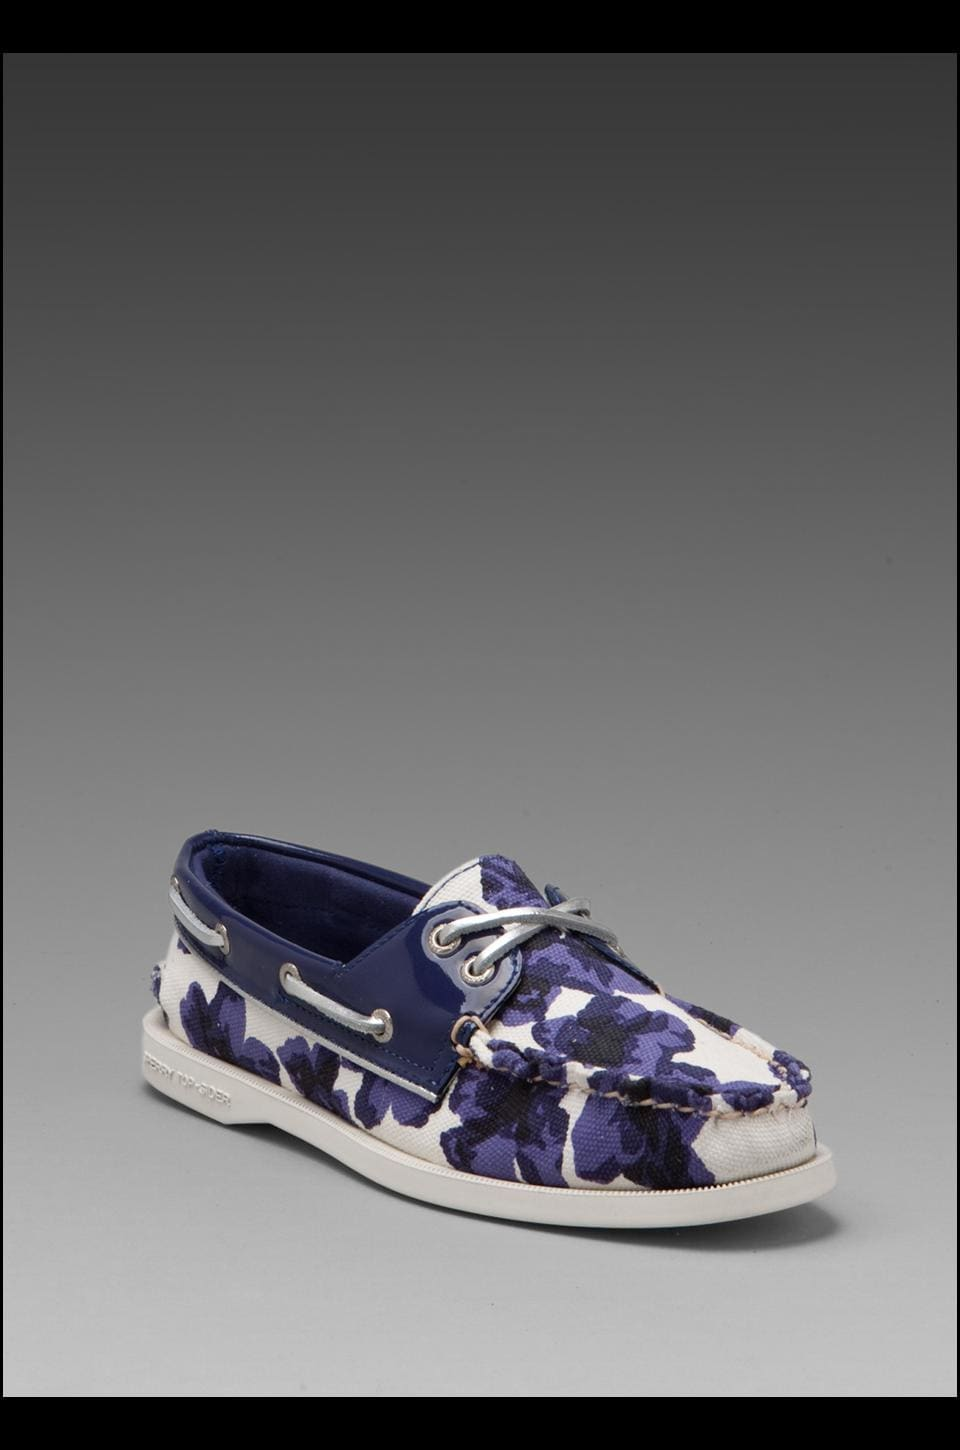 Sperry Top-Sider 2-Eye in Blue Floral Print